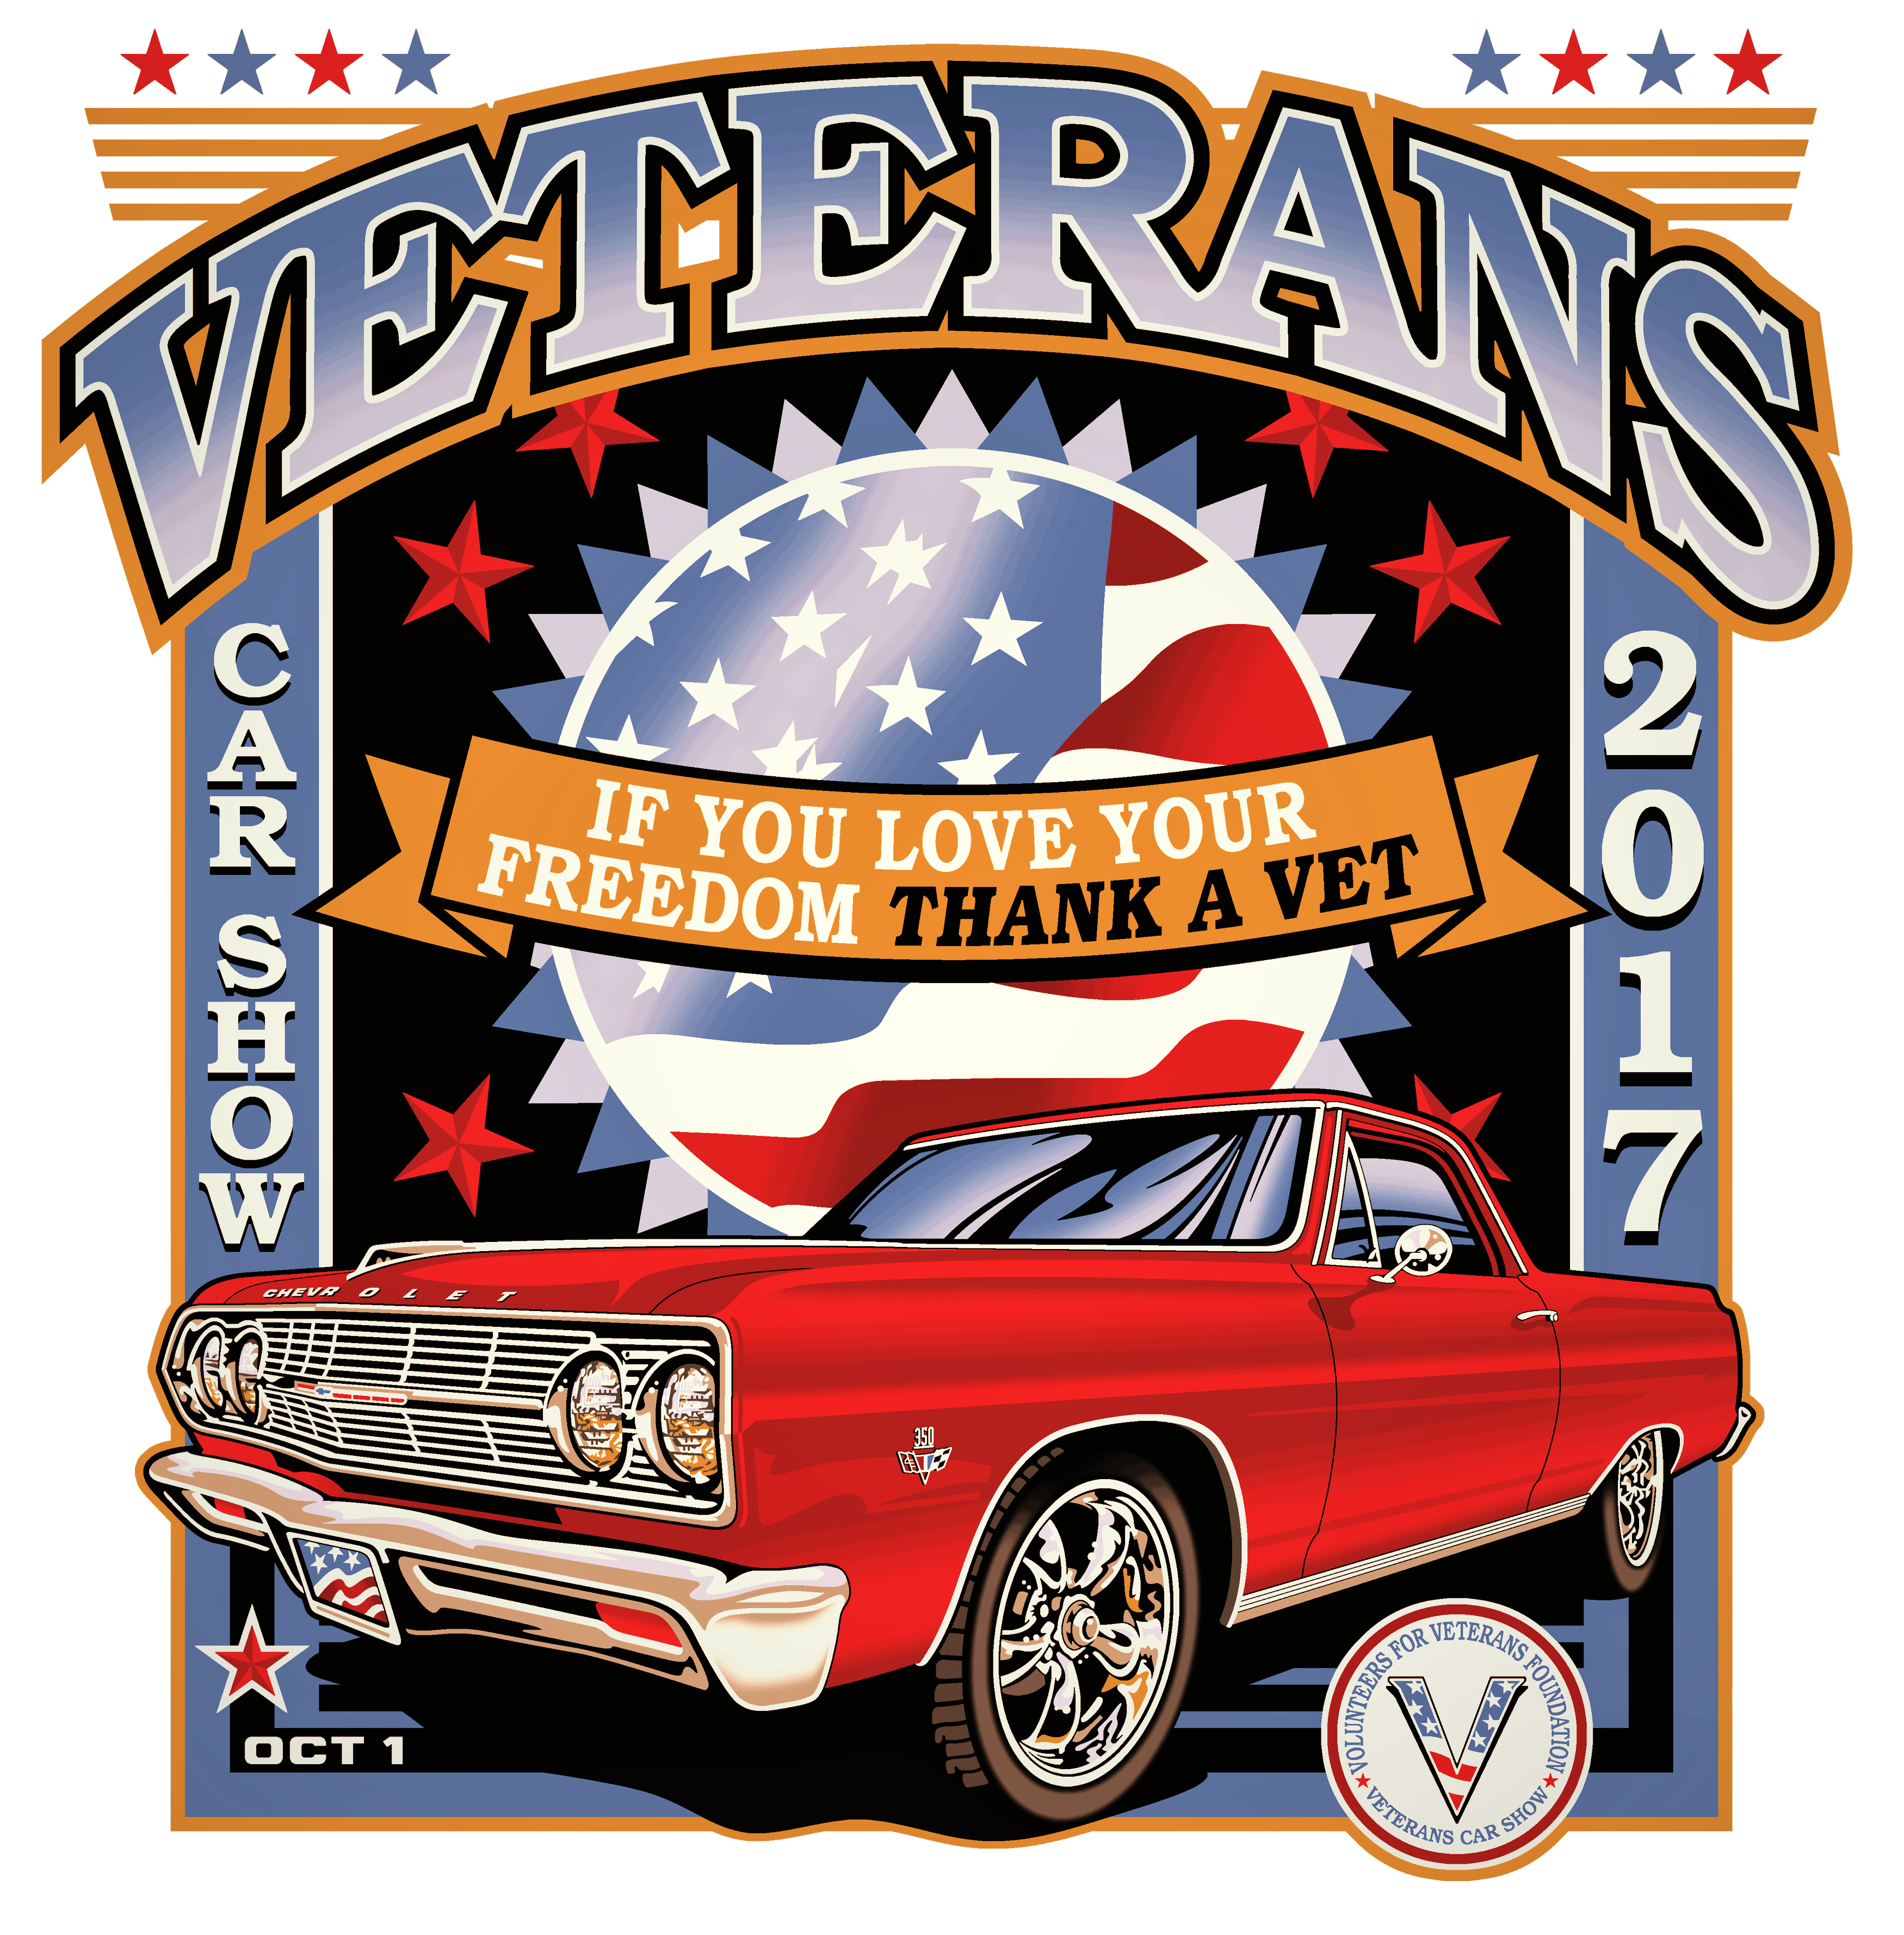 Classic car show clipart clip art free stock Volunteers for Veterans Foundation | Car Show Programs clip art free stock